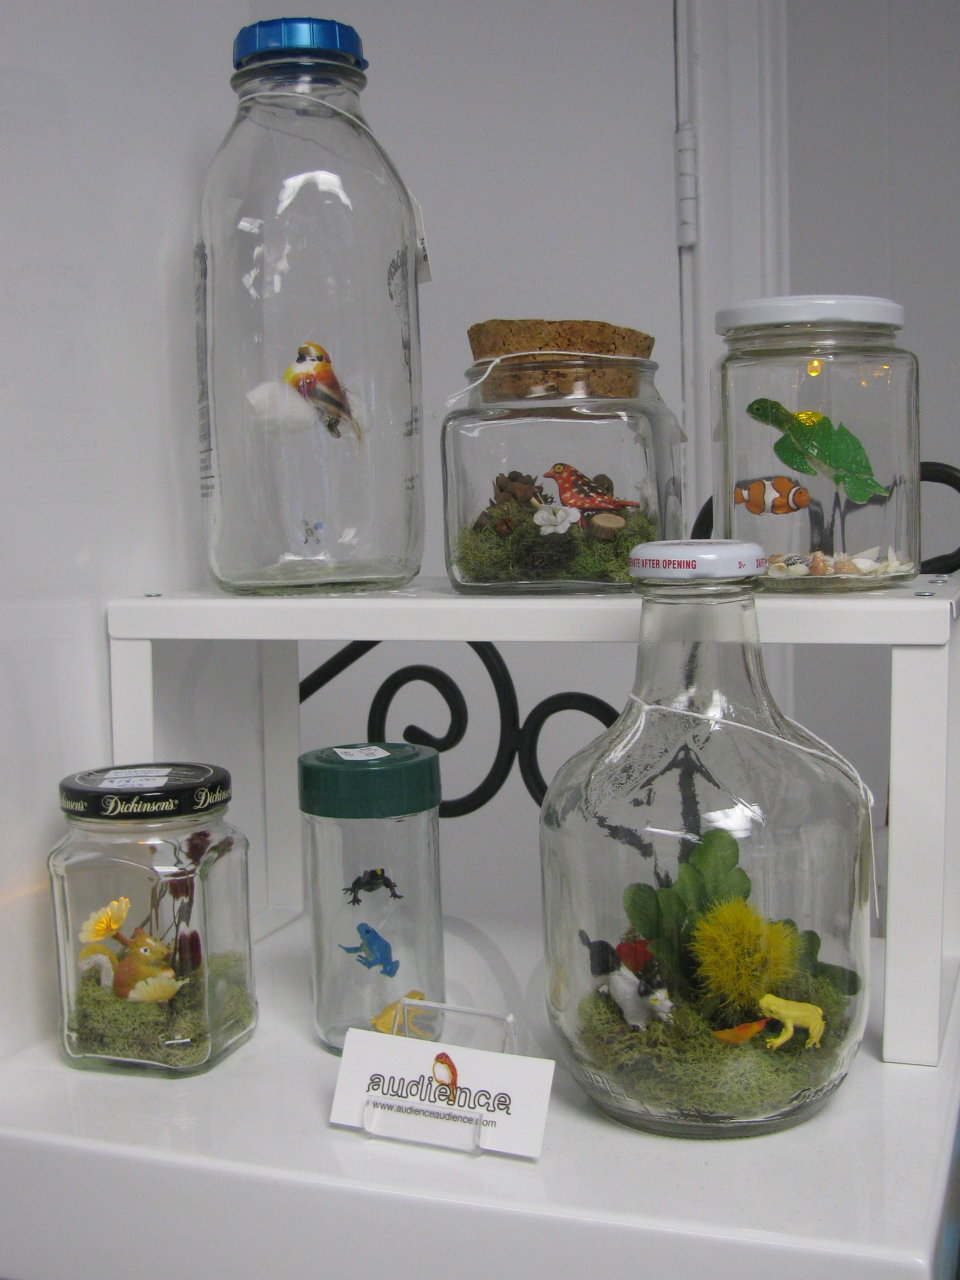 miniatures on display at a shop (SD)